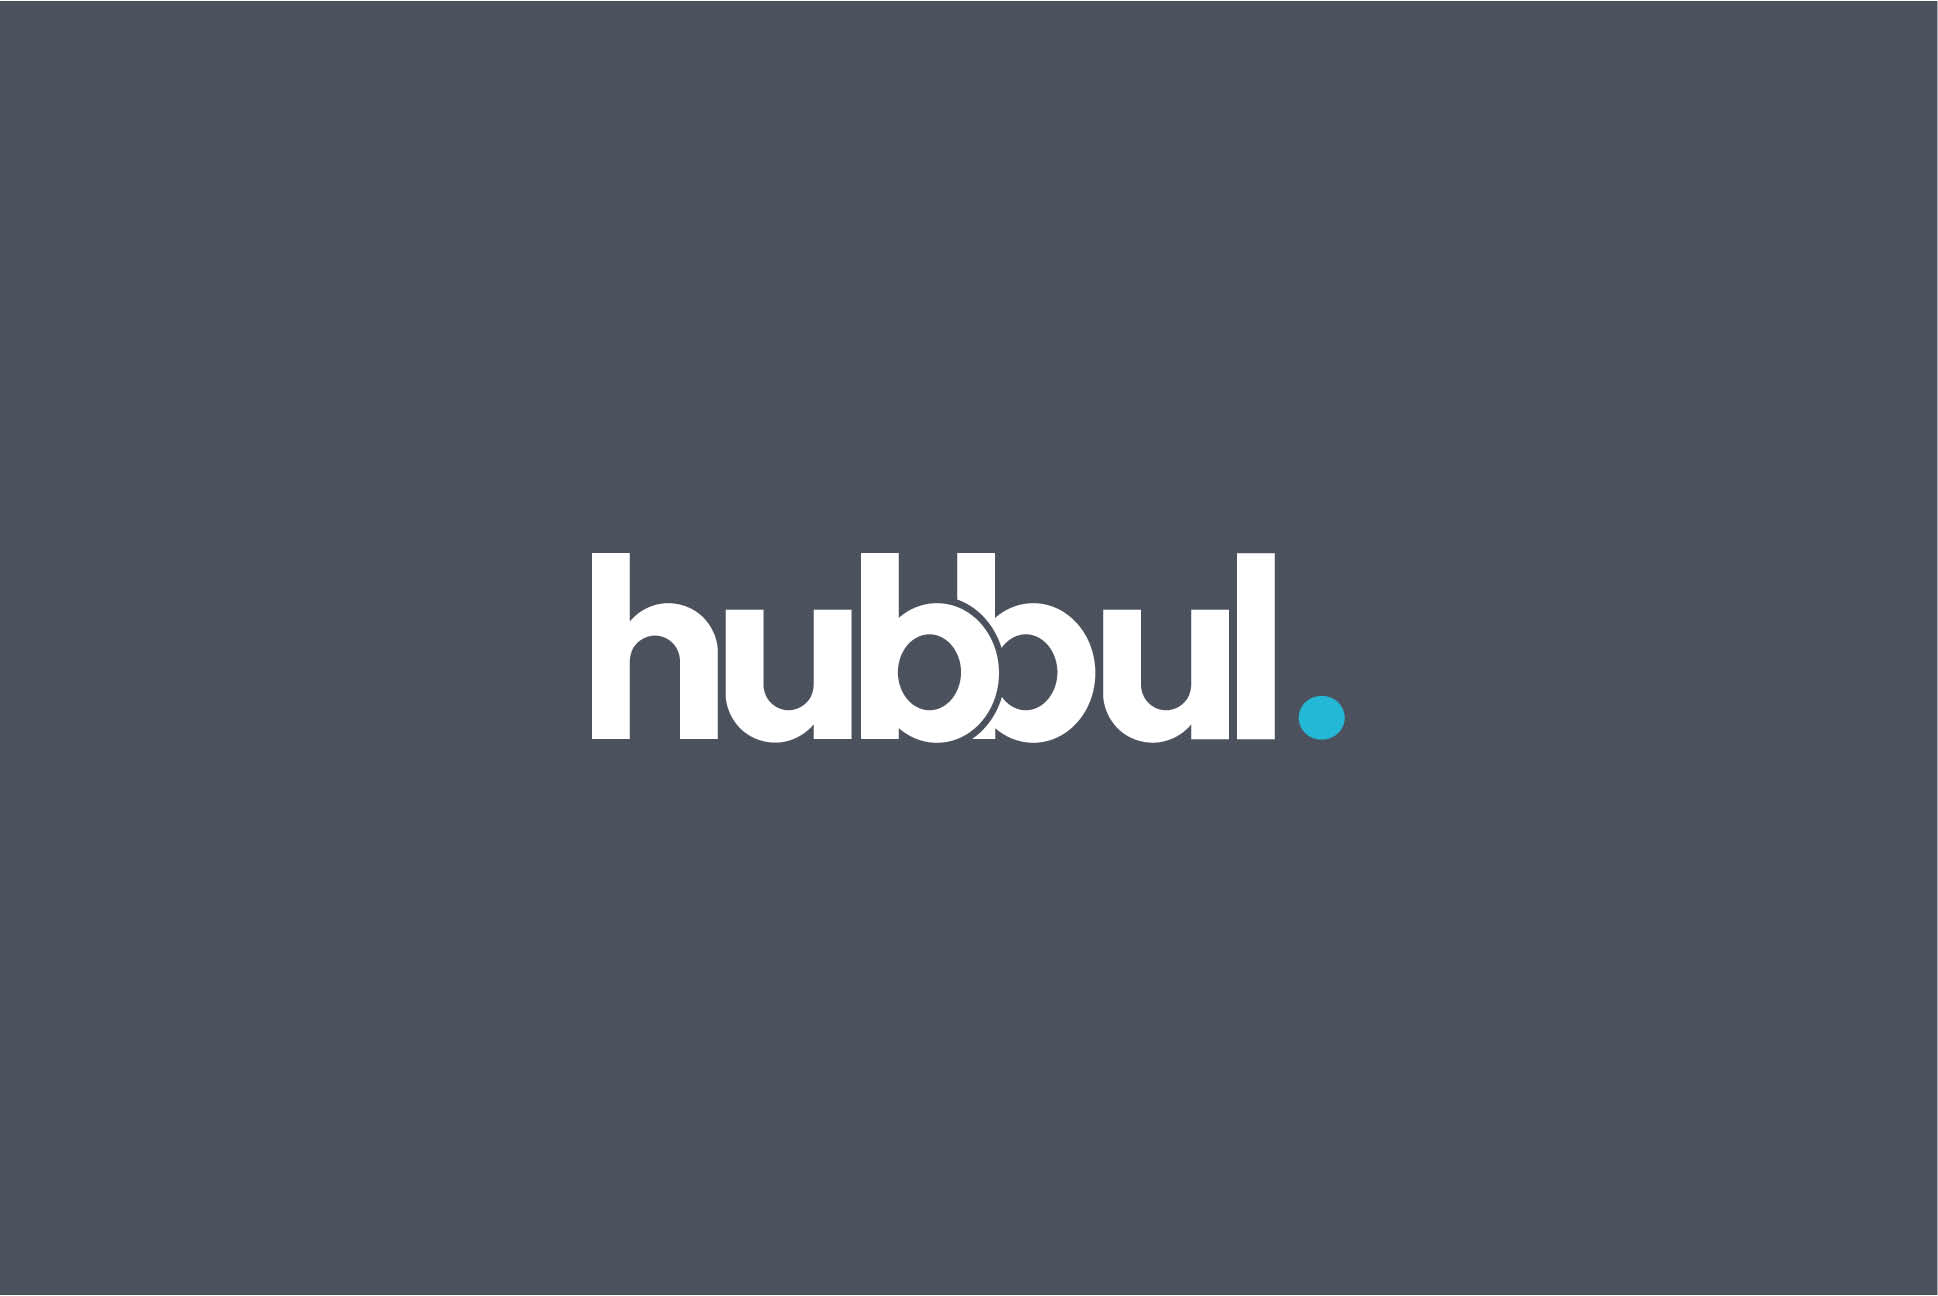 hubbul logo | Branding, Strategy and Logo Design | Independent Marketing | IM London | London Branding Agency